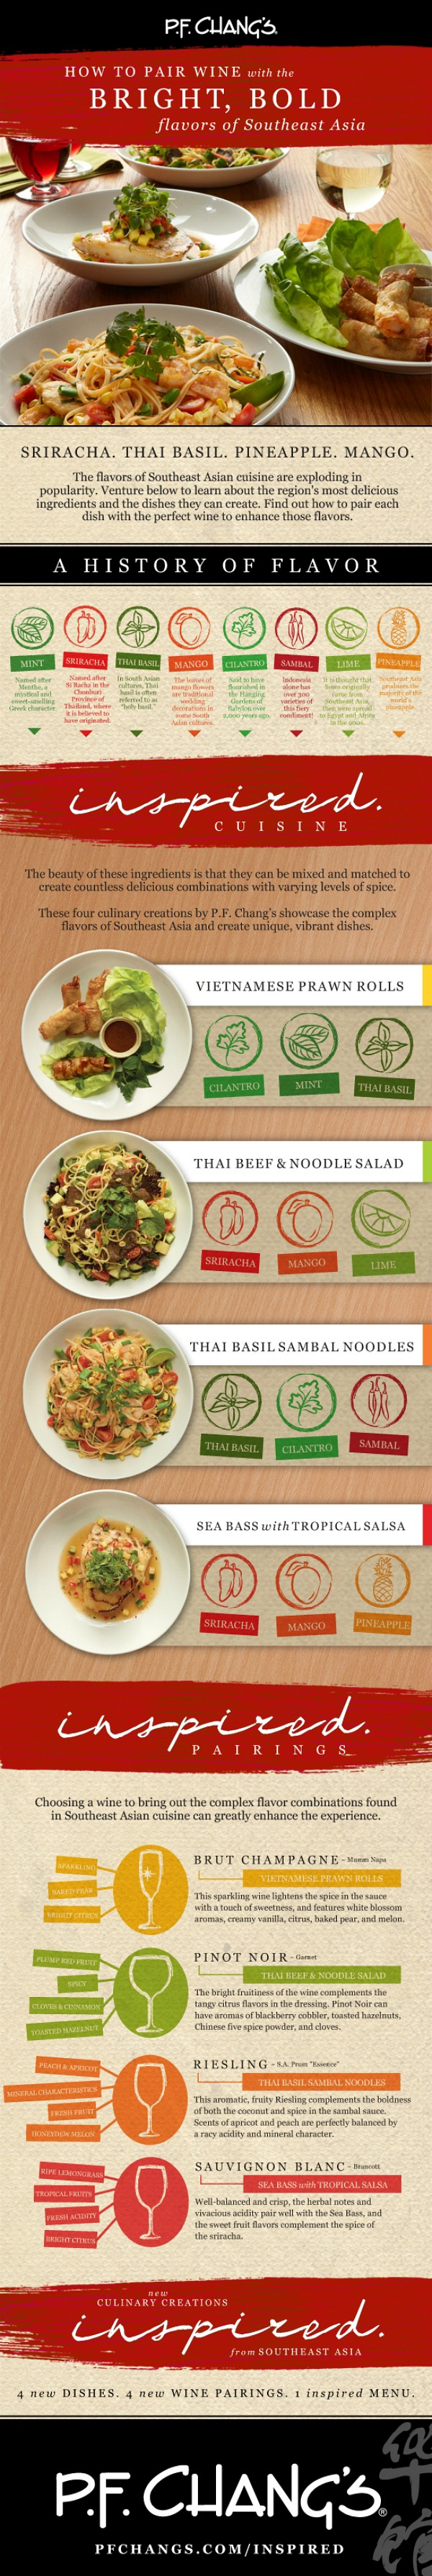 Infographic-pf changs